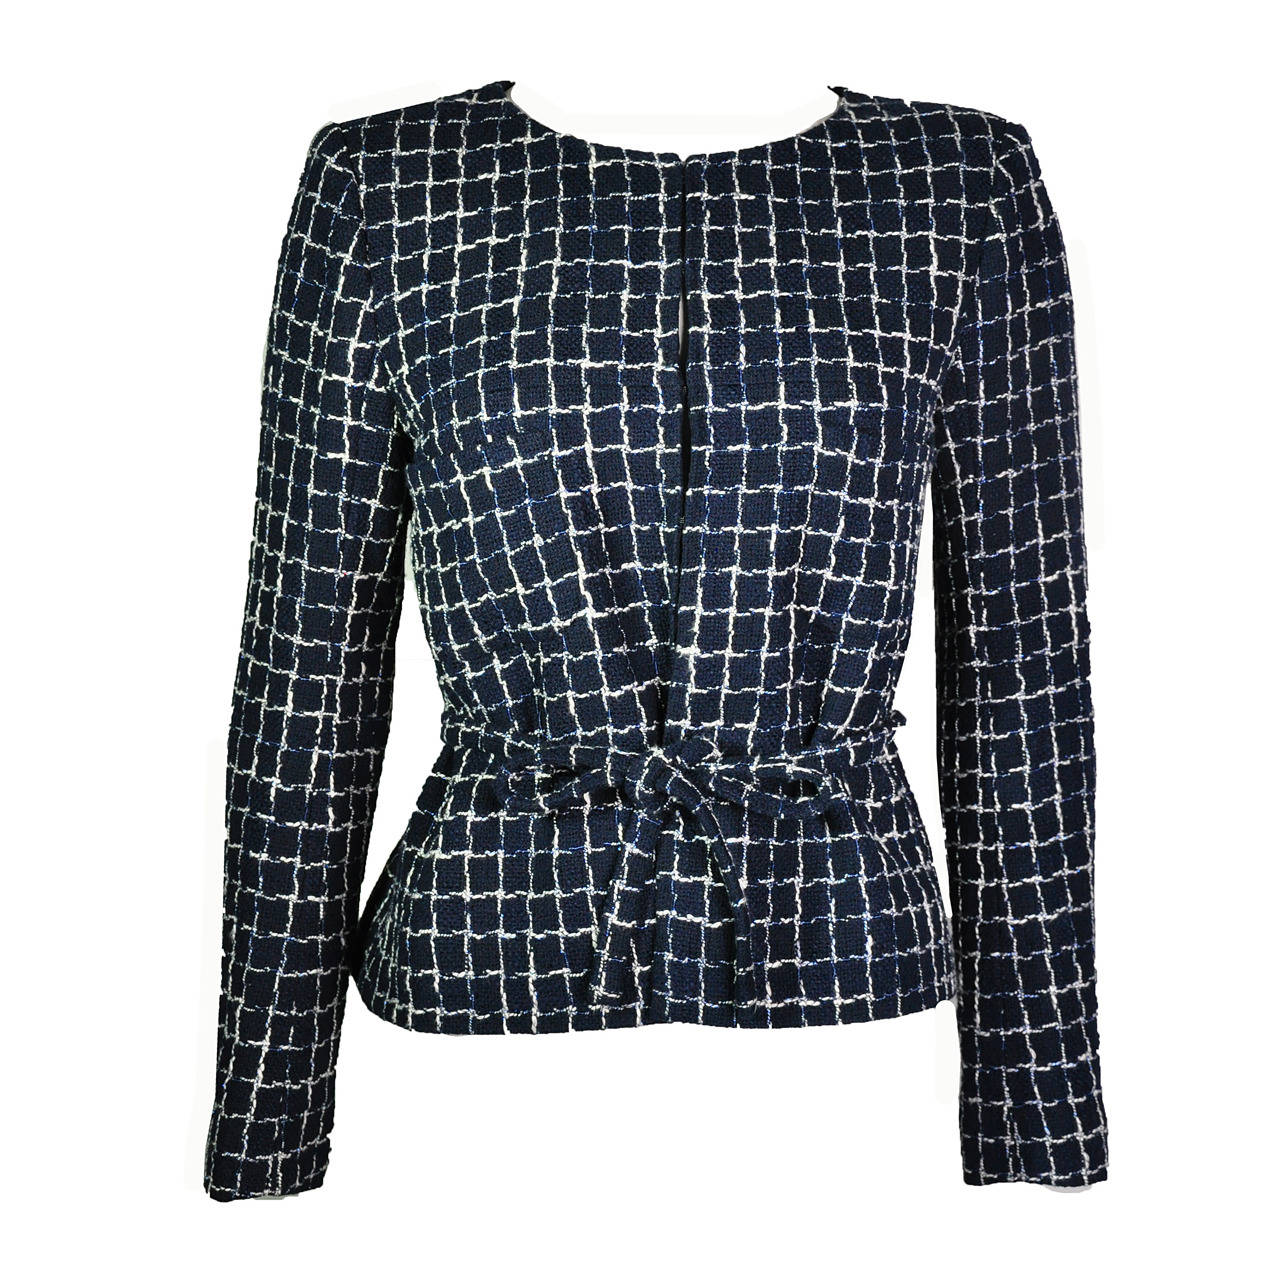 Chanel 2014 S/S Navy Cotton Tweed Jacket FR38 For Sale